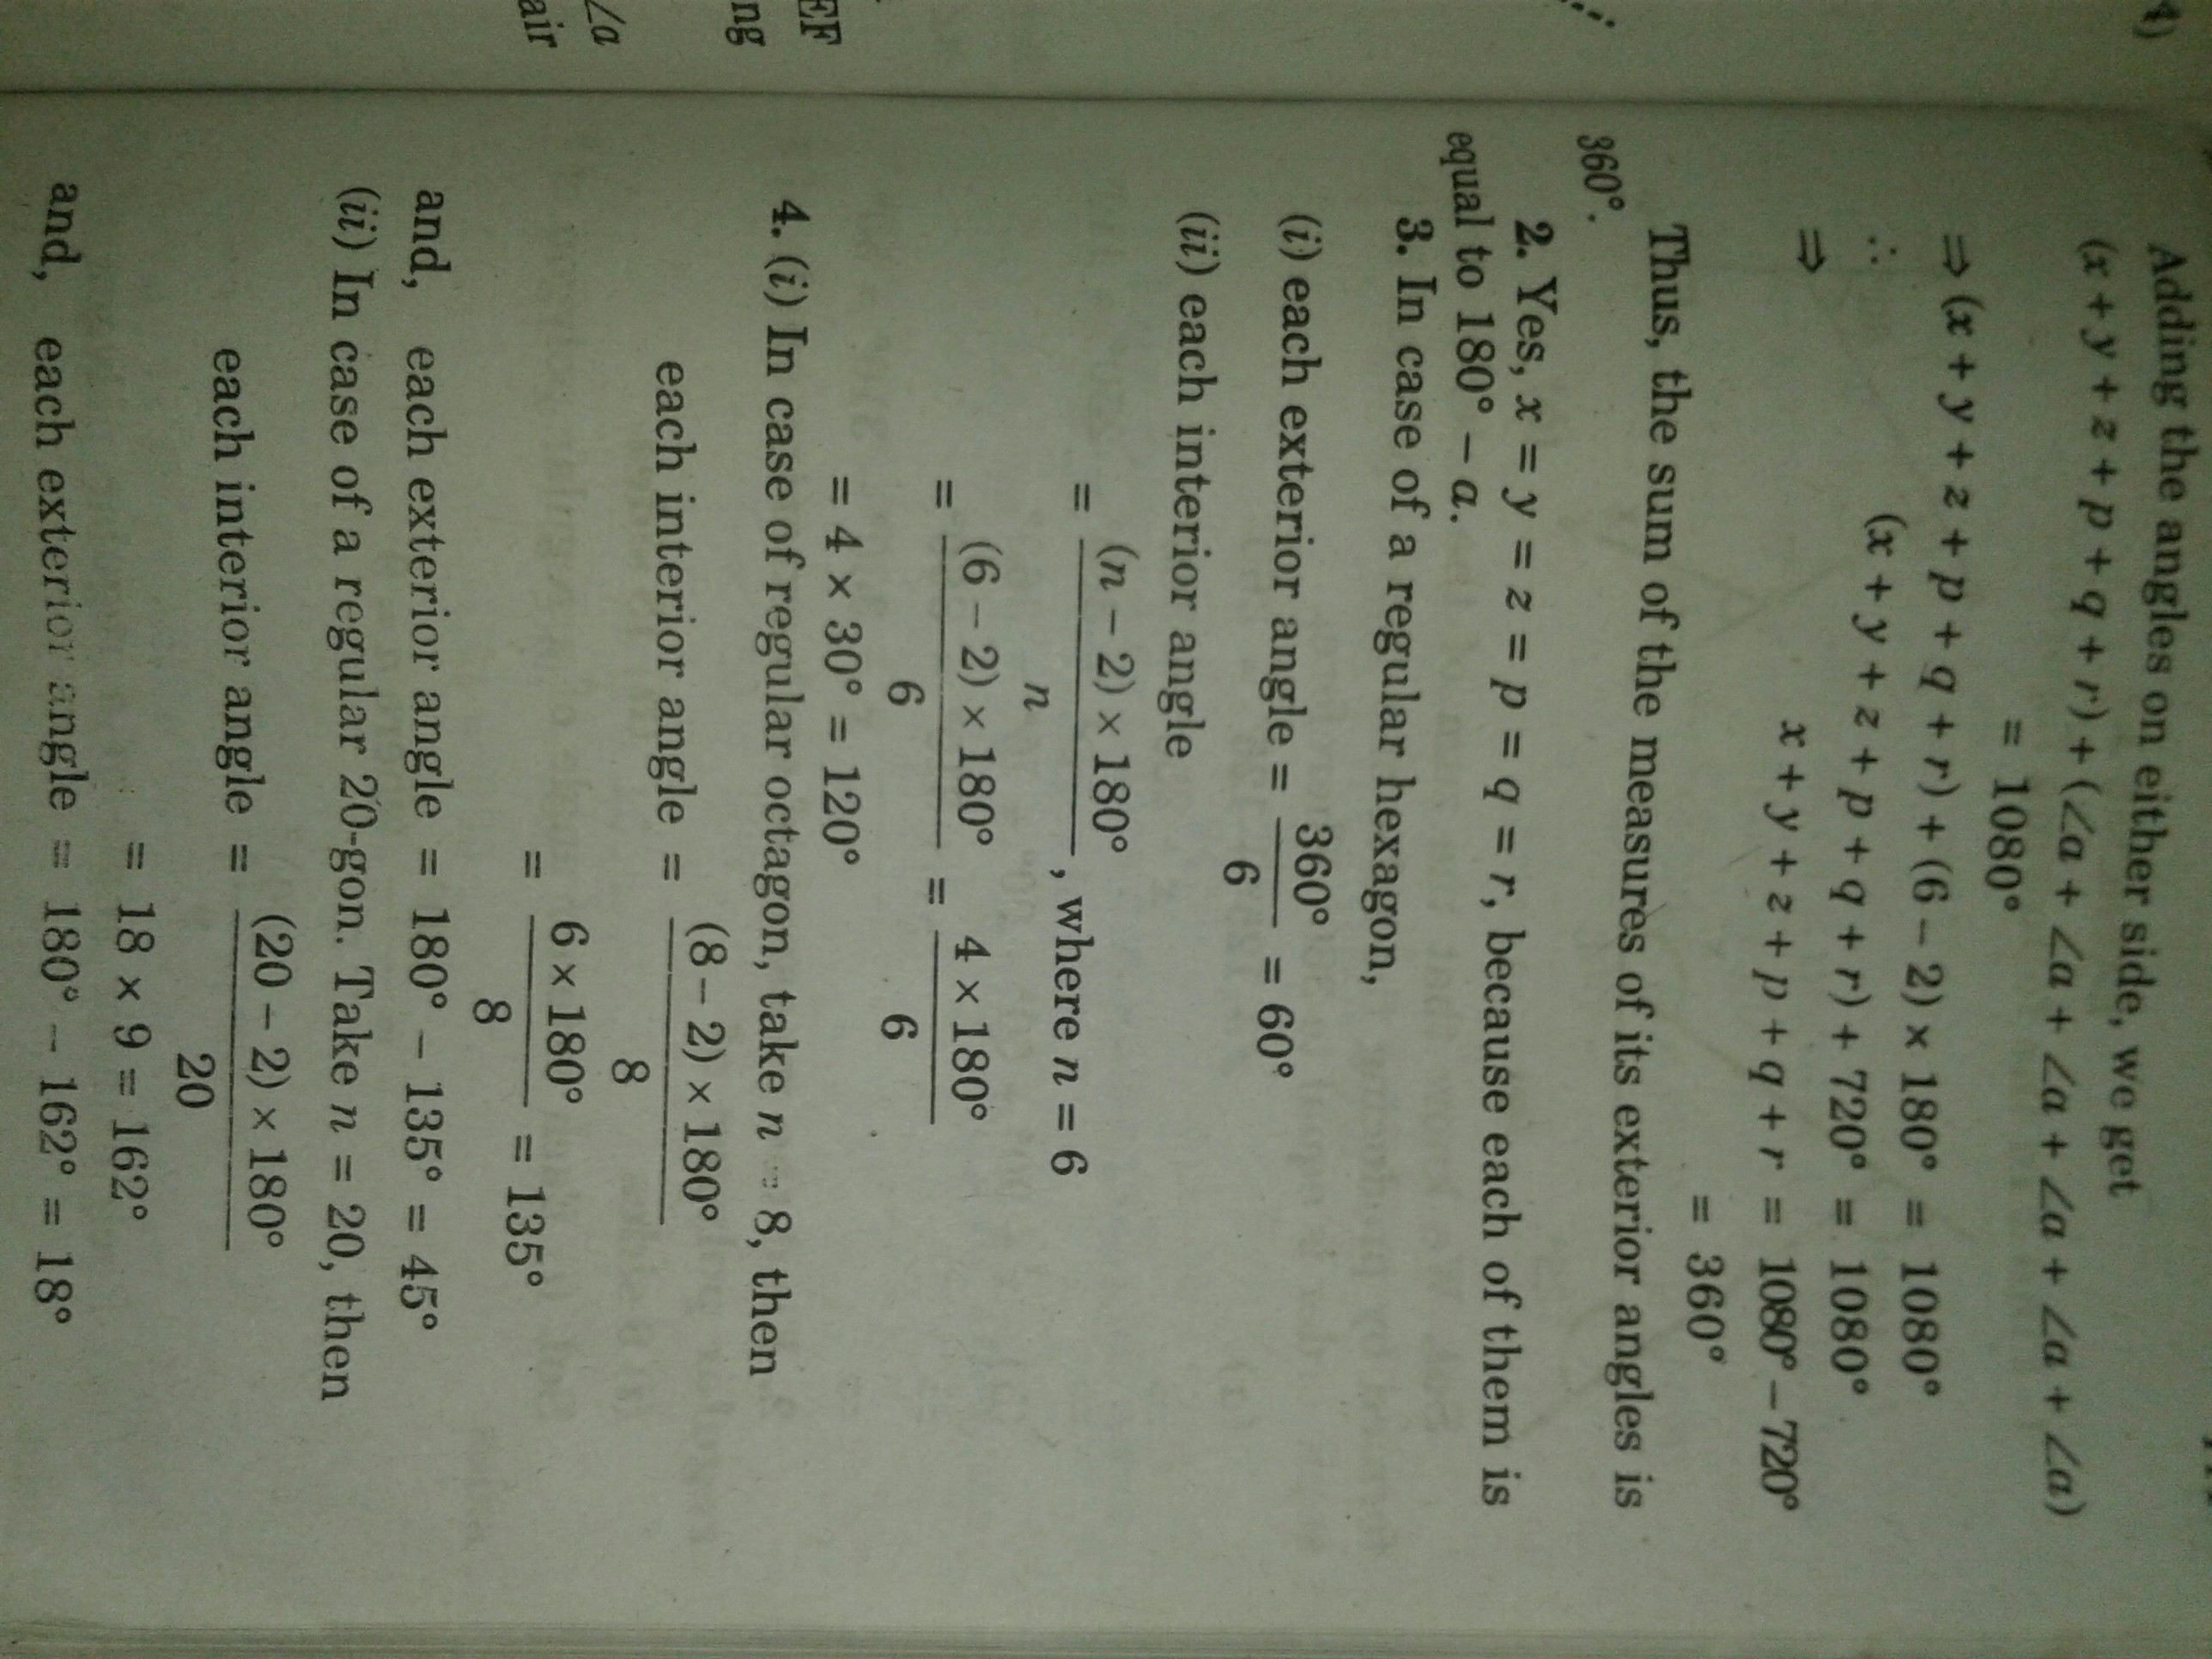 Maths class 8 ncert Question try these page no 43 - Brainly in